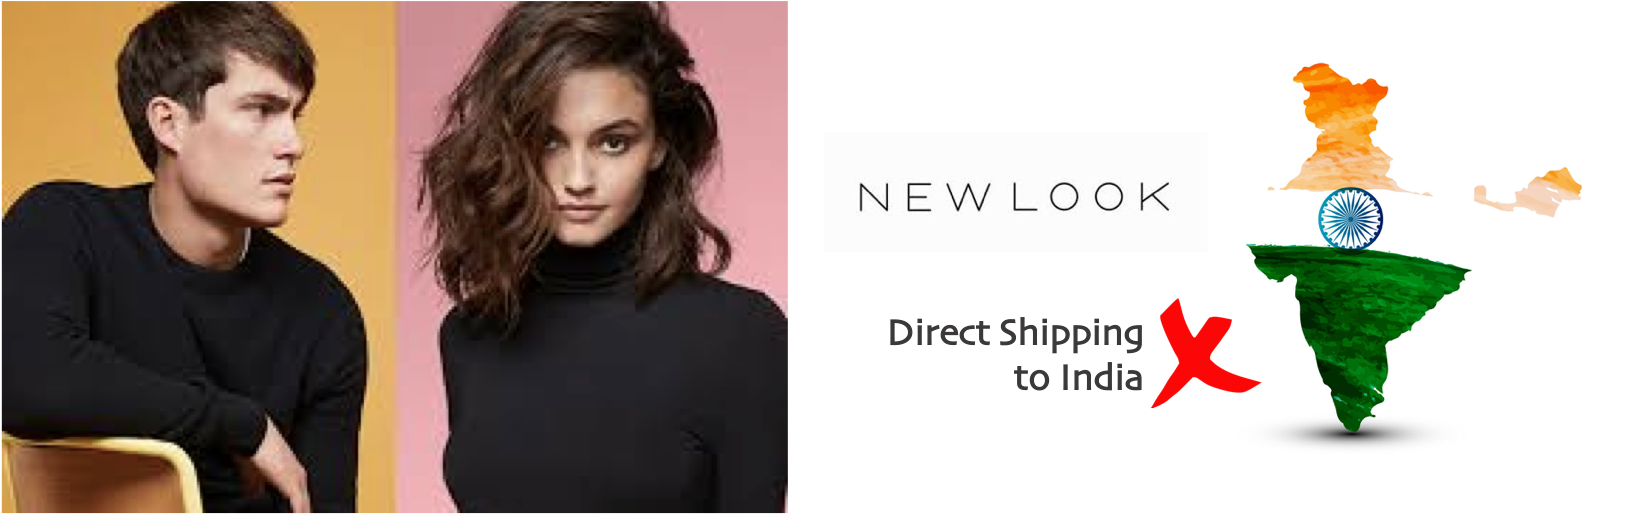 shop New Look ship to india